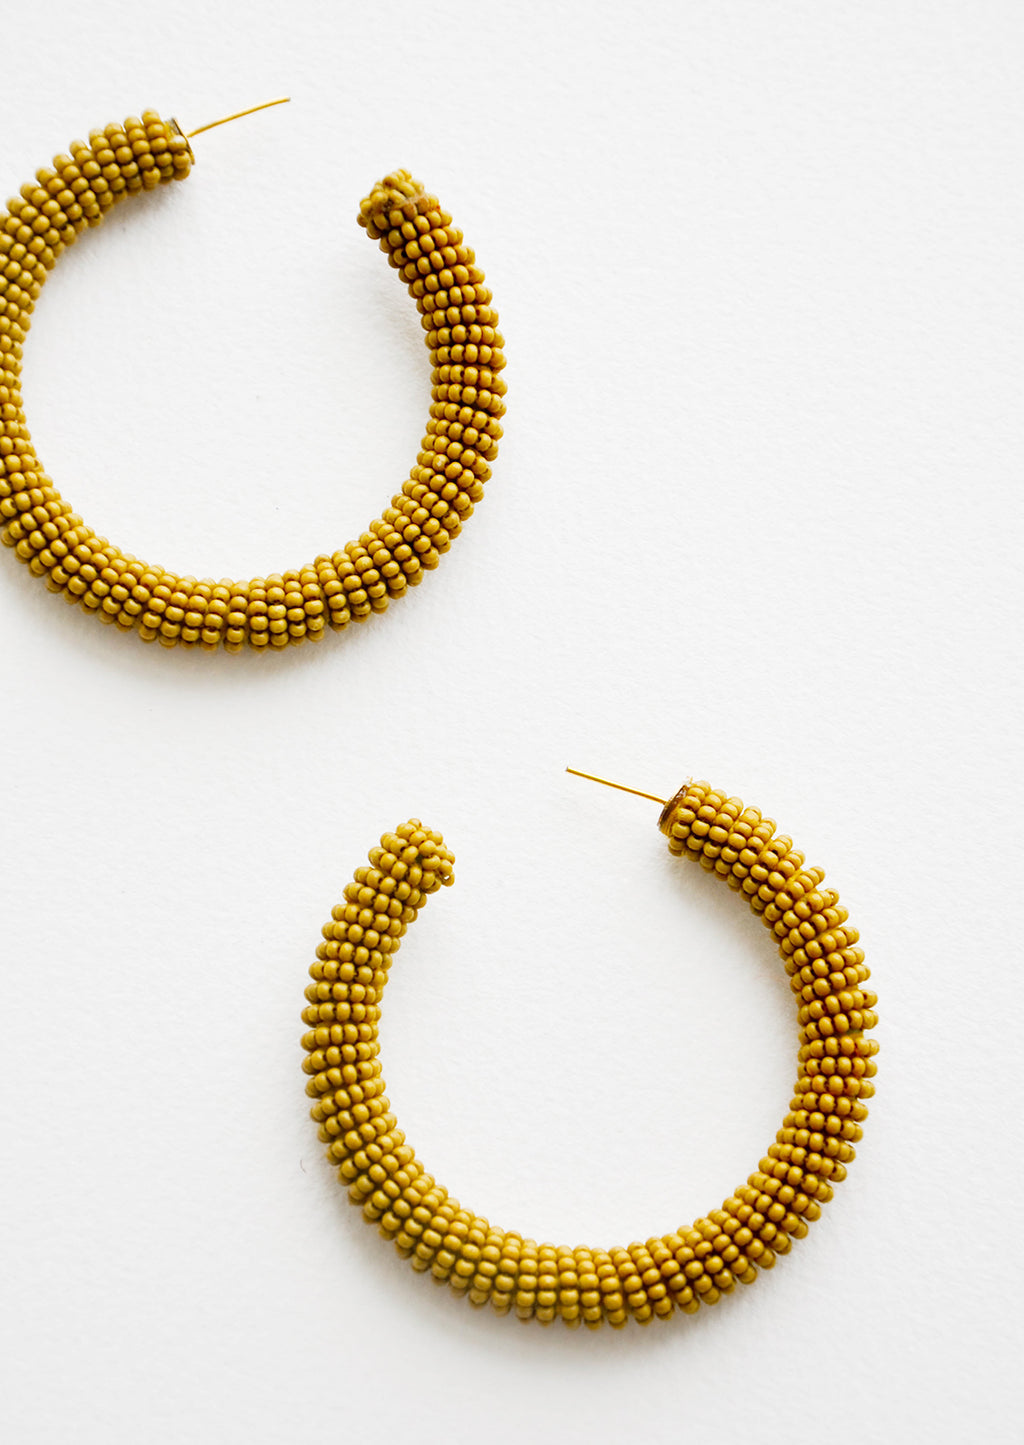 Lichen: Thick hoop earrings of yellow-green colored glass beads.